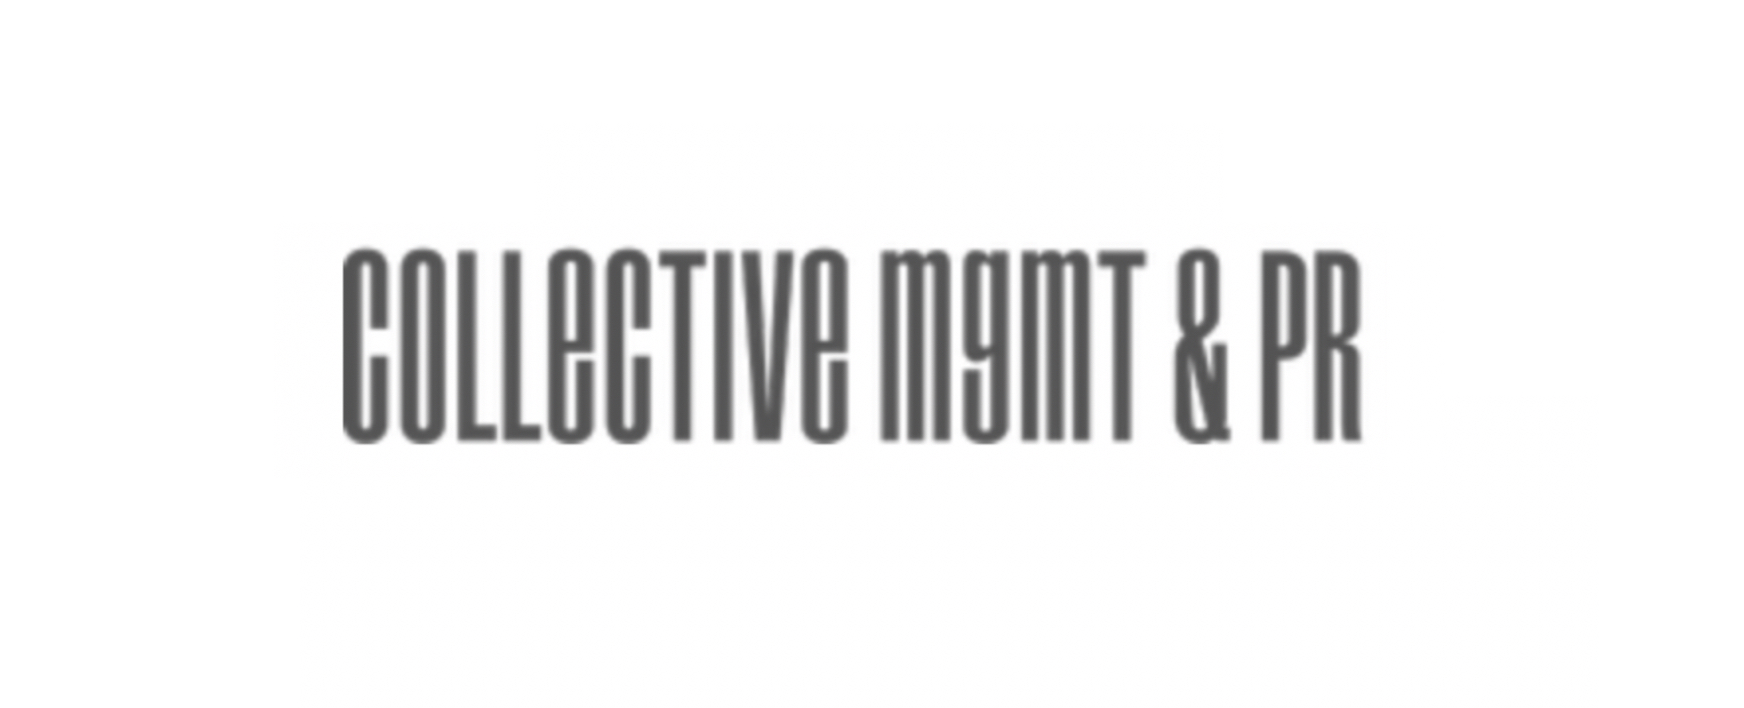 Collective Management & PR logo